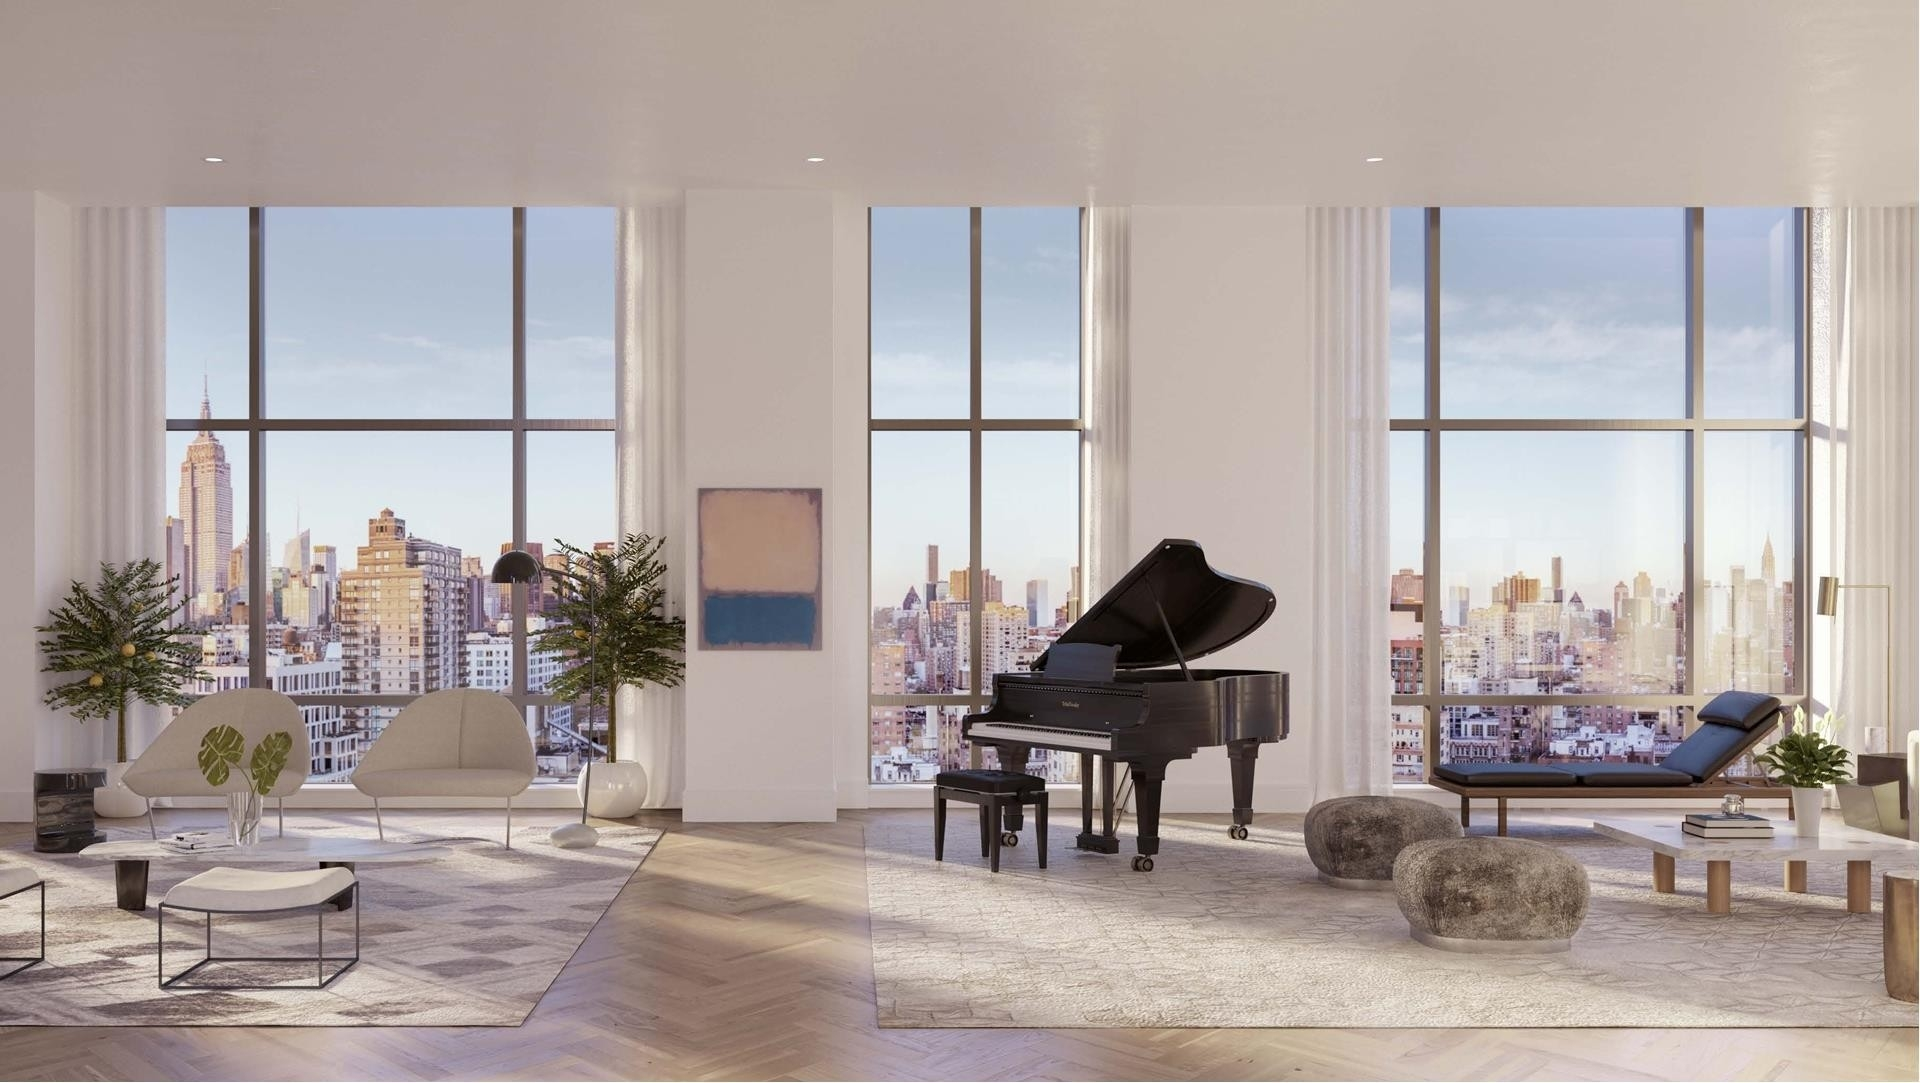 Property в Gramercy Square, 215 E 19TH ST , 16C Gramercy Park, New York, NY 10003